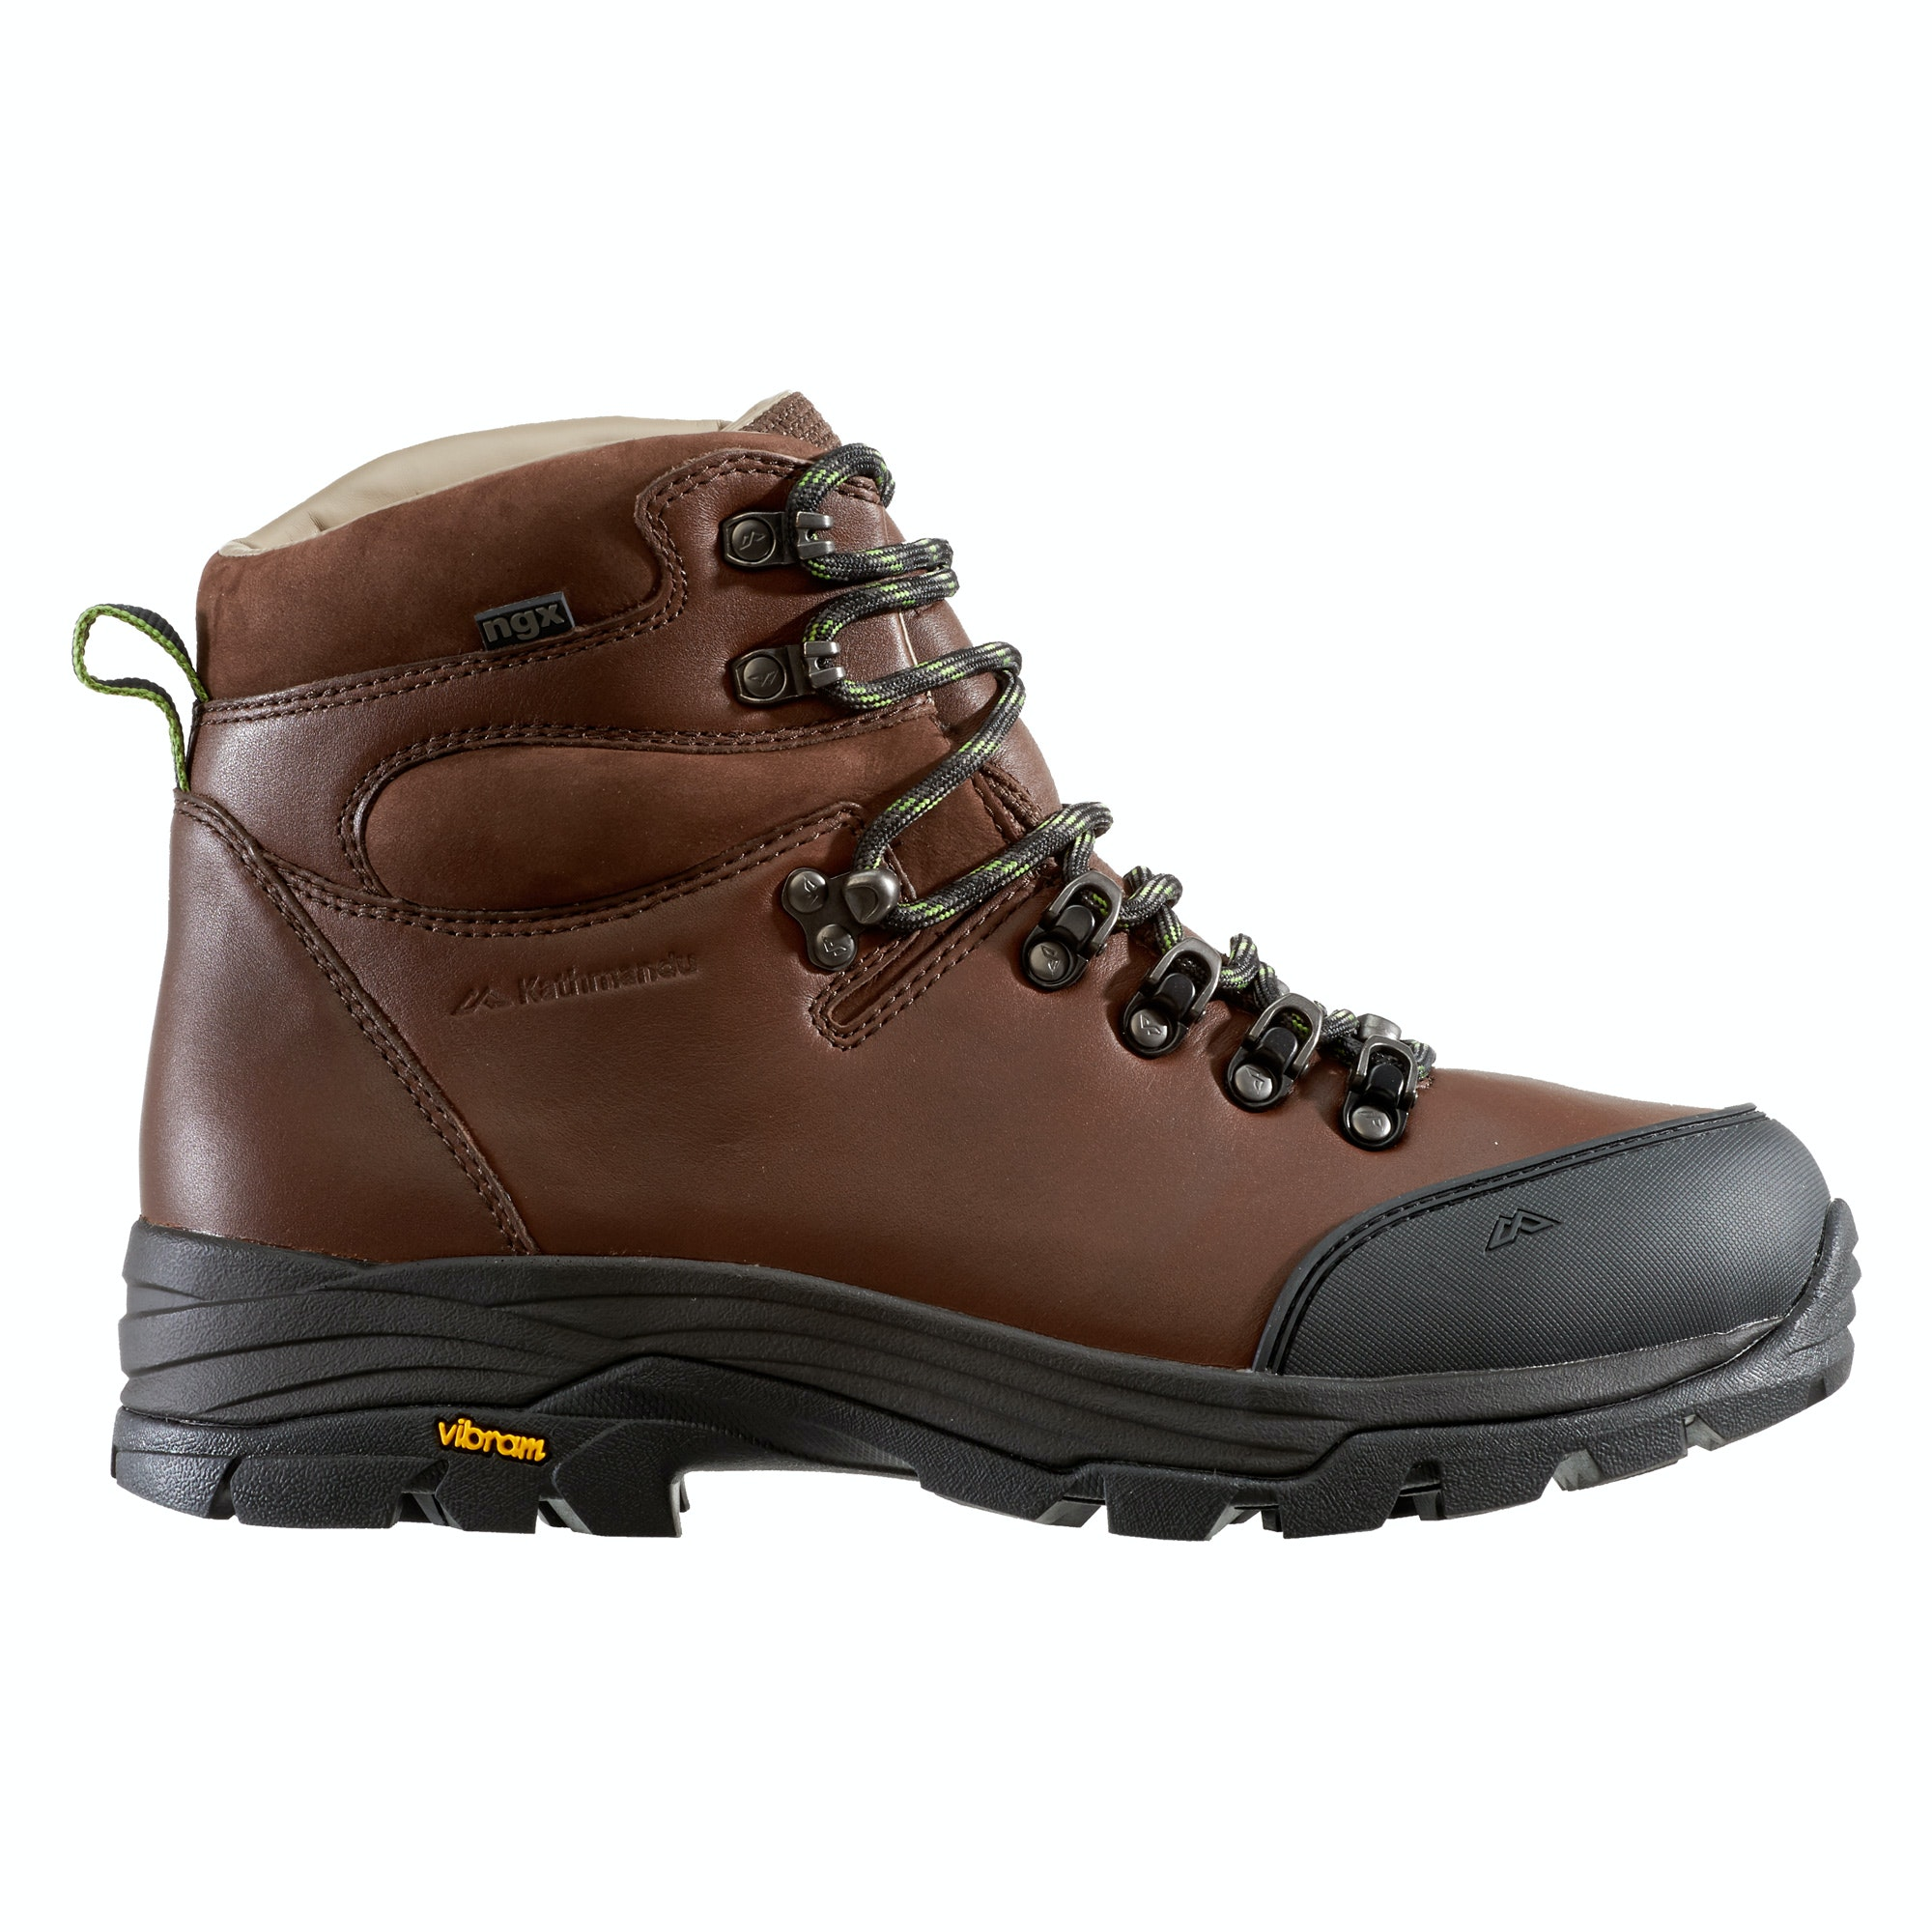 tiber s ngx leather hiking boots chestnut